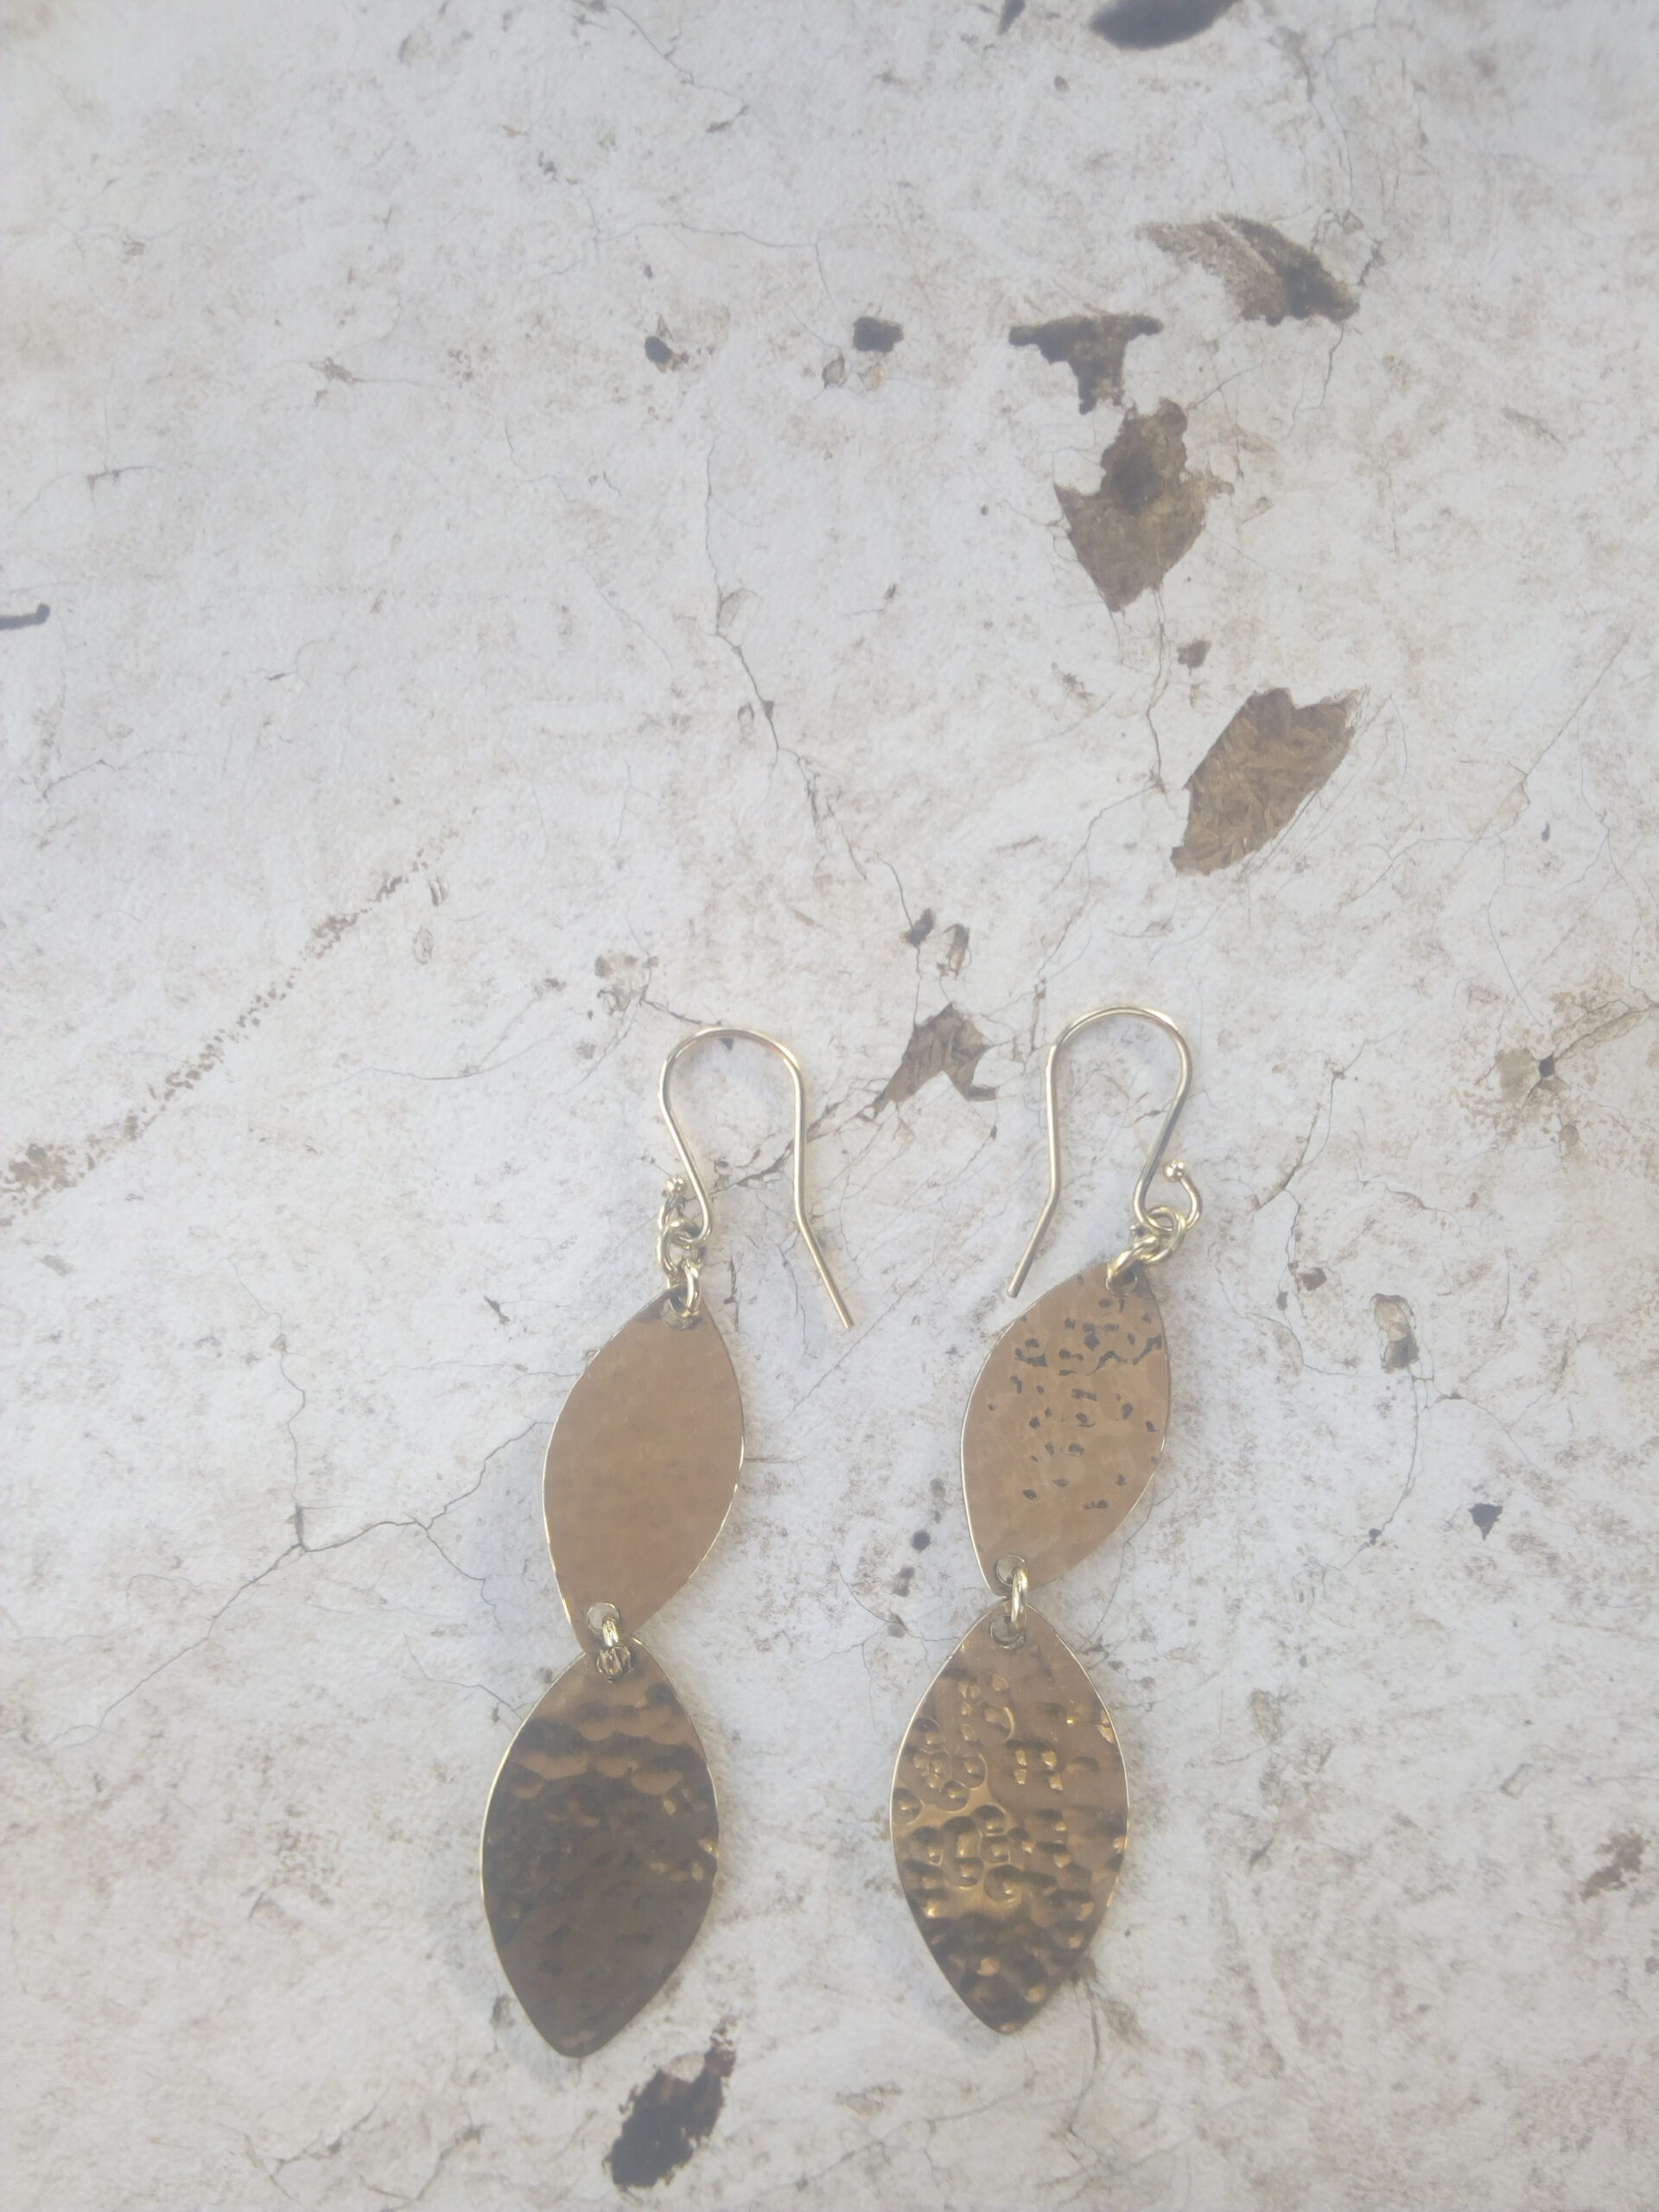 Earing made of brass sheet